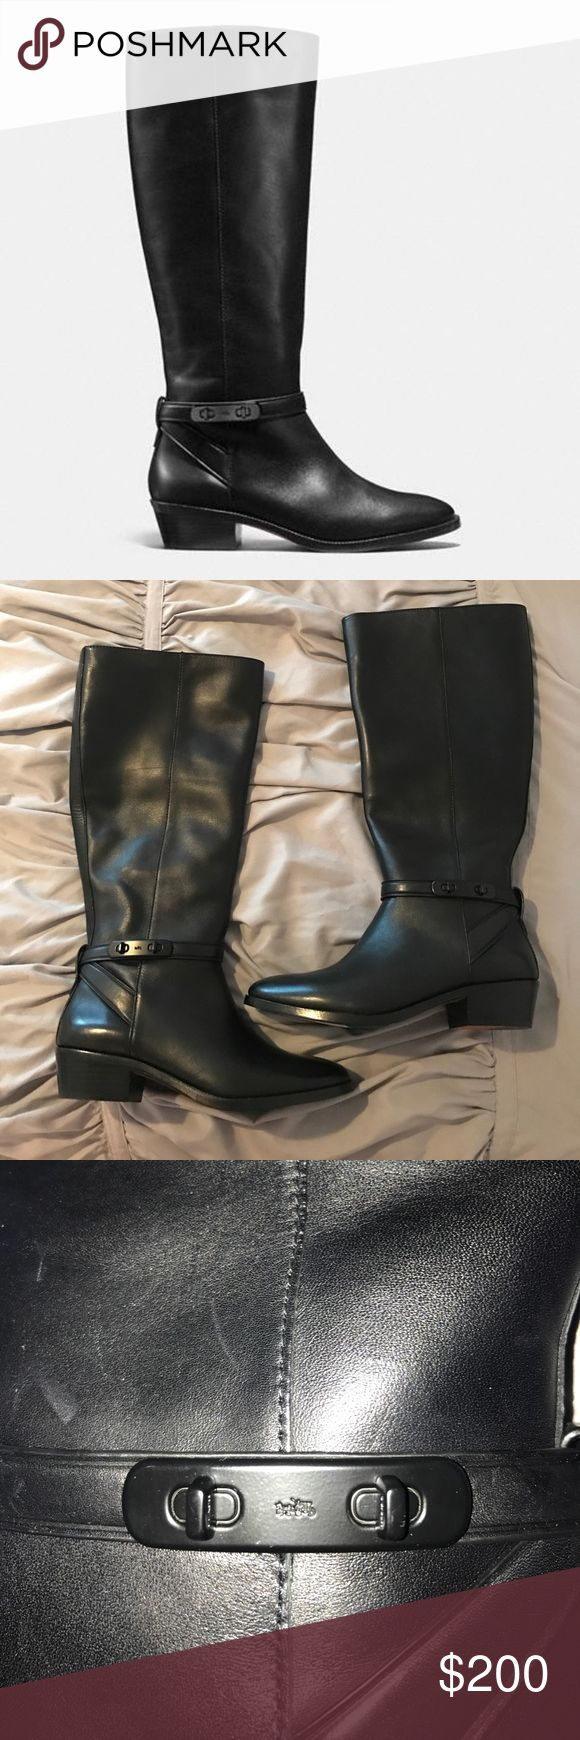 Black Caroline COACH Boots. Black coach boots with ankle strap detail. NWT. Never worn.  🔹Spring cleaning so everything must go! Which also means no trades! 🚫 🔹Reasonable offers accepted through the offer button.  🔹Bundle and Save 20% off.  🔹Fast Shipping!  🔹Smoke free home. Coach Shoes Winter & Rain Boots